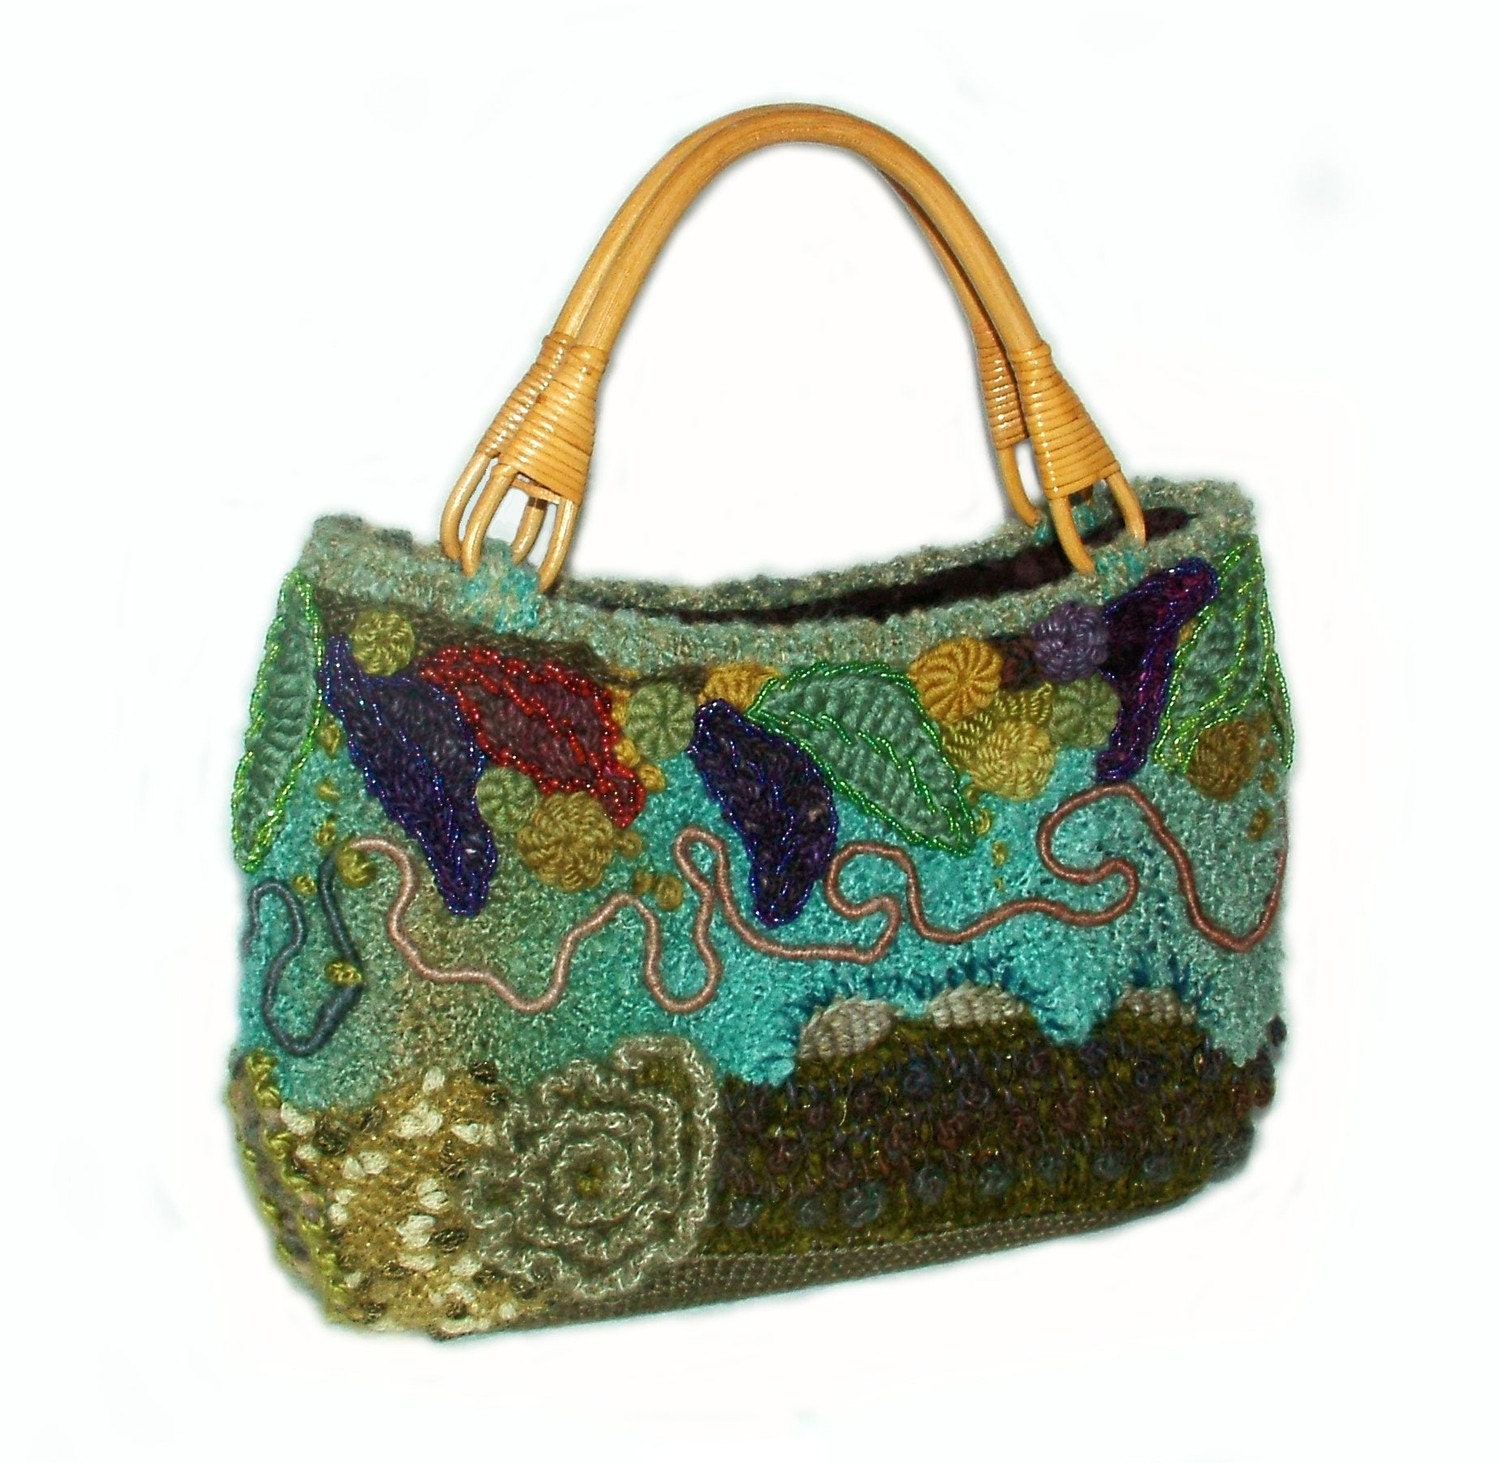 Freeform OOAK Crochet Knit Handbag Carry Bag Tote by rensfibreart